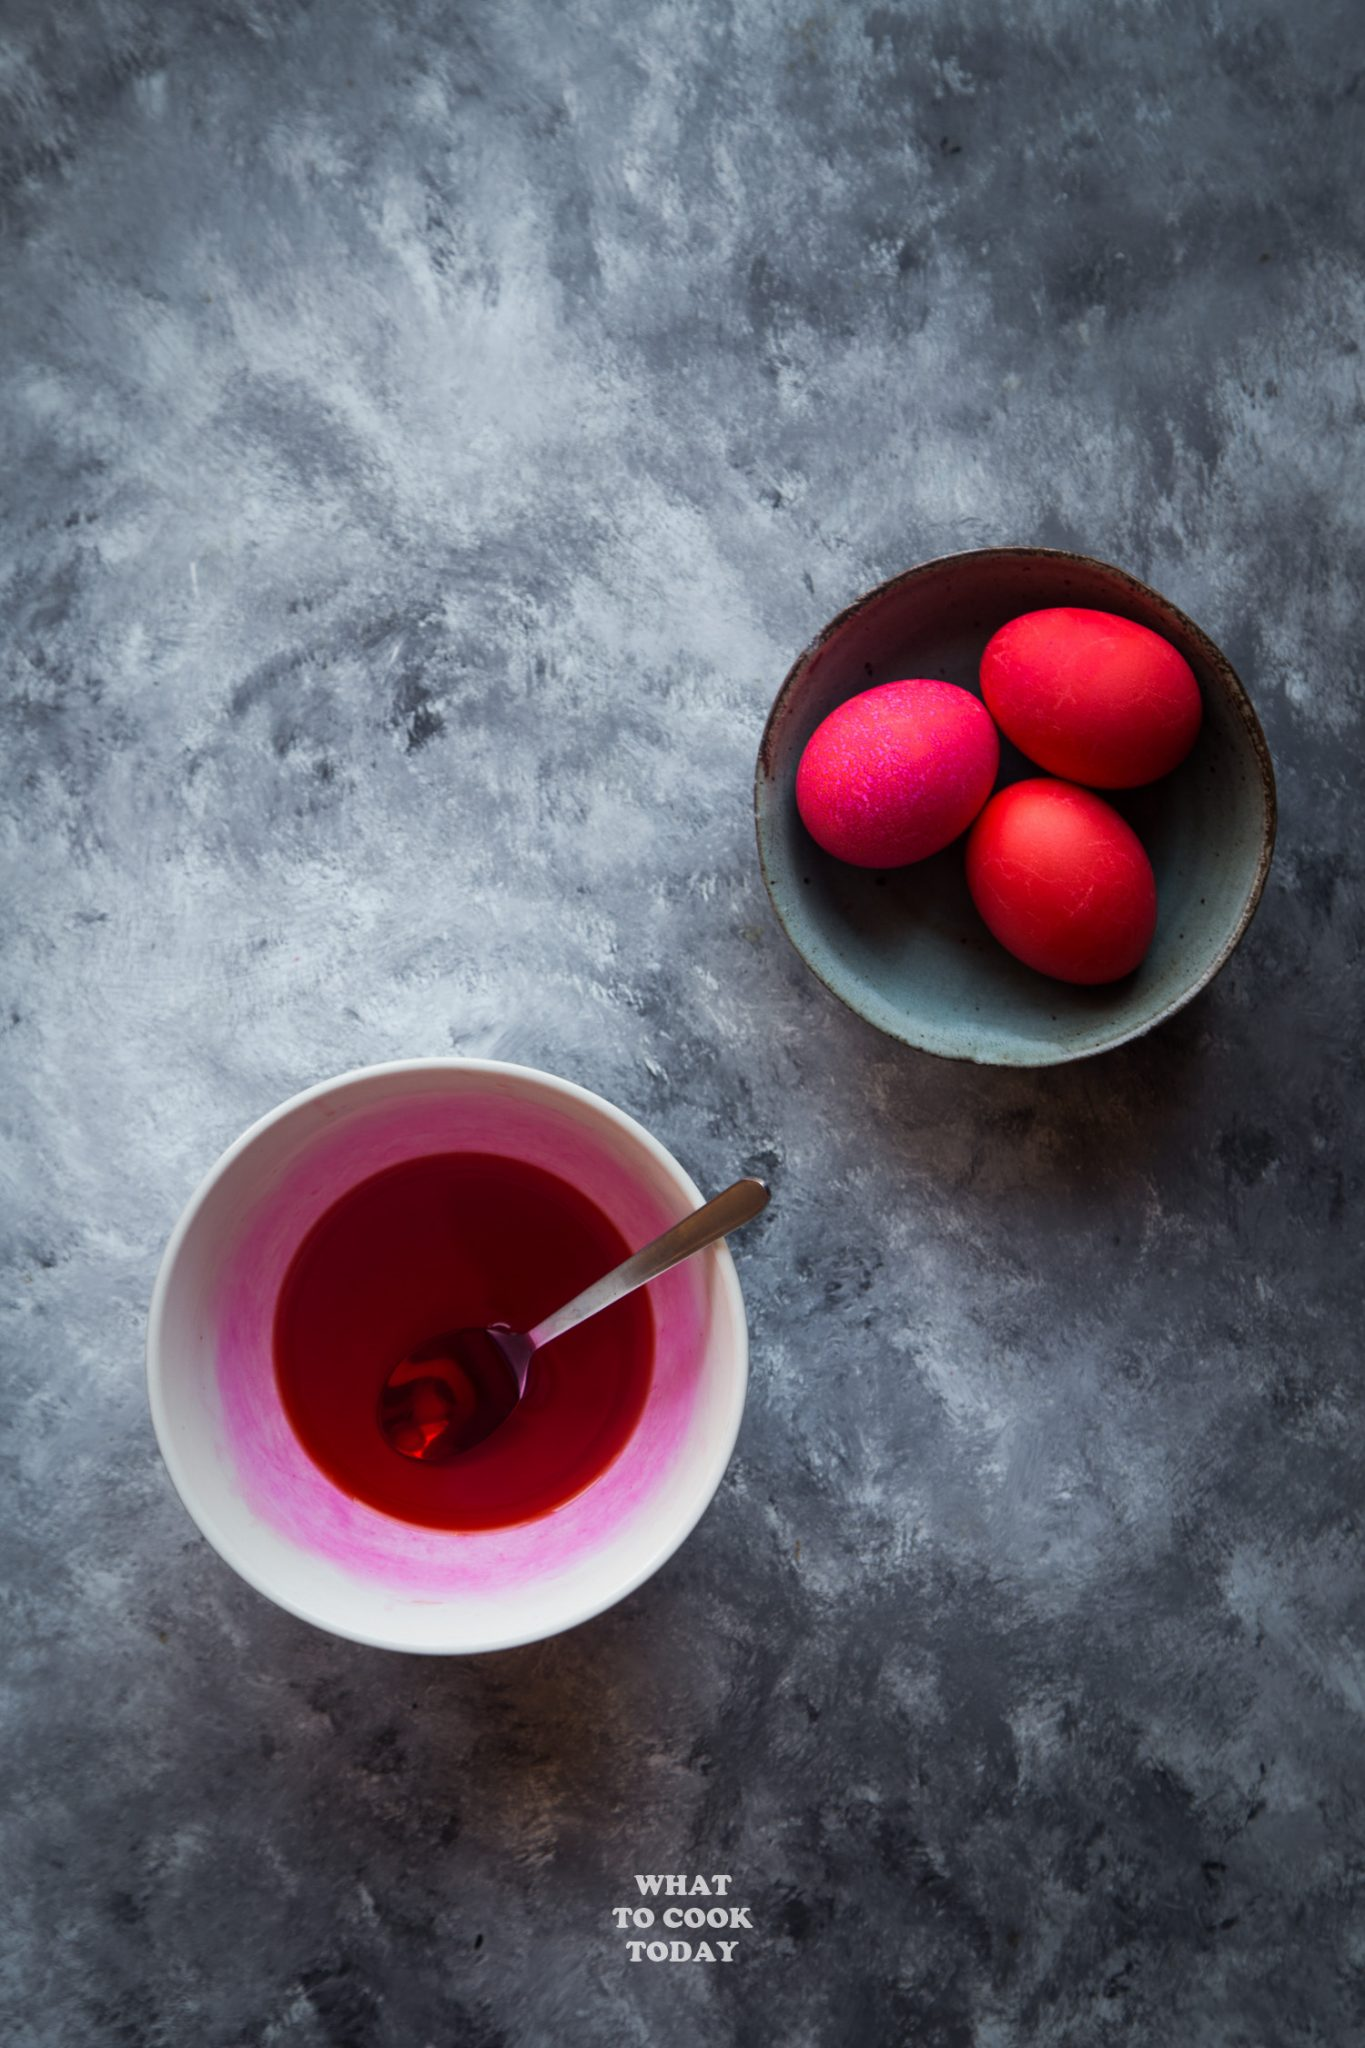 Nicely dyed red eggs